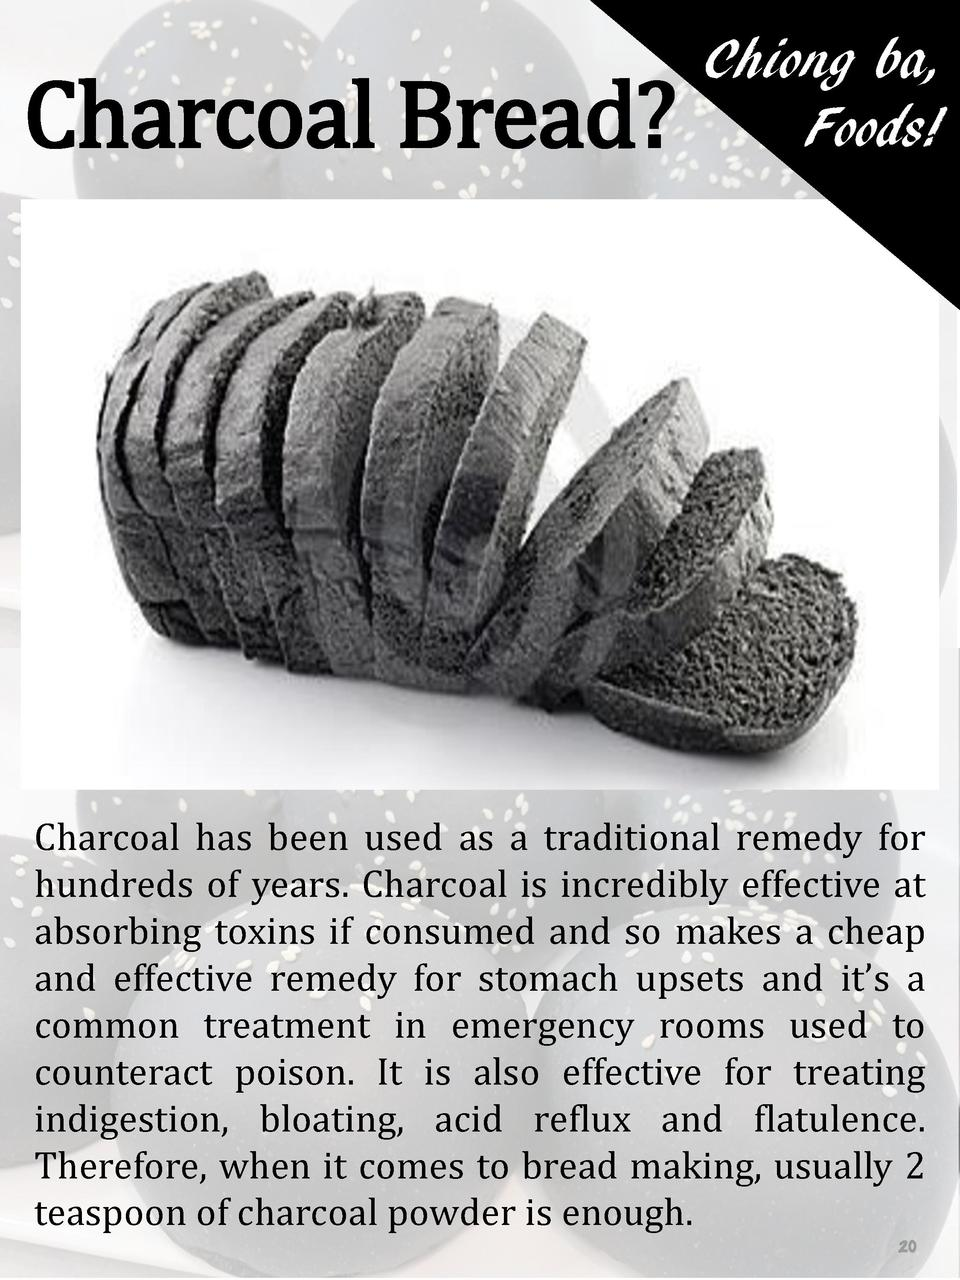 Charcoal Bread   Chiong ba, Foods   Charcoal has been used as a traditional remedy for hundreds of years. Charcoal is incr...